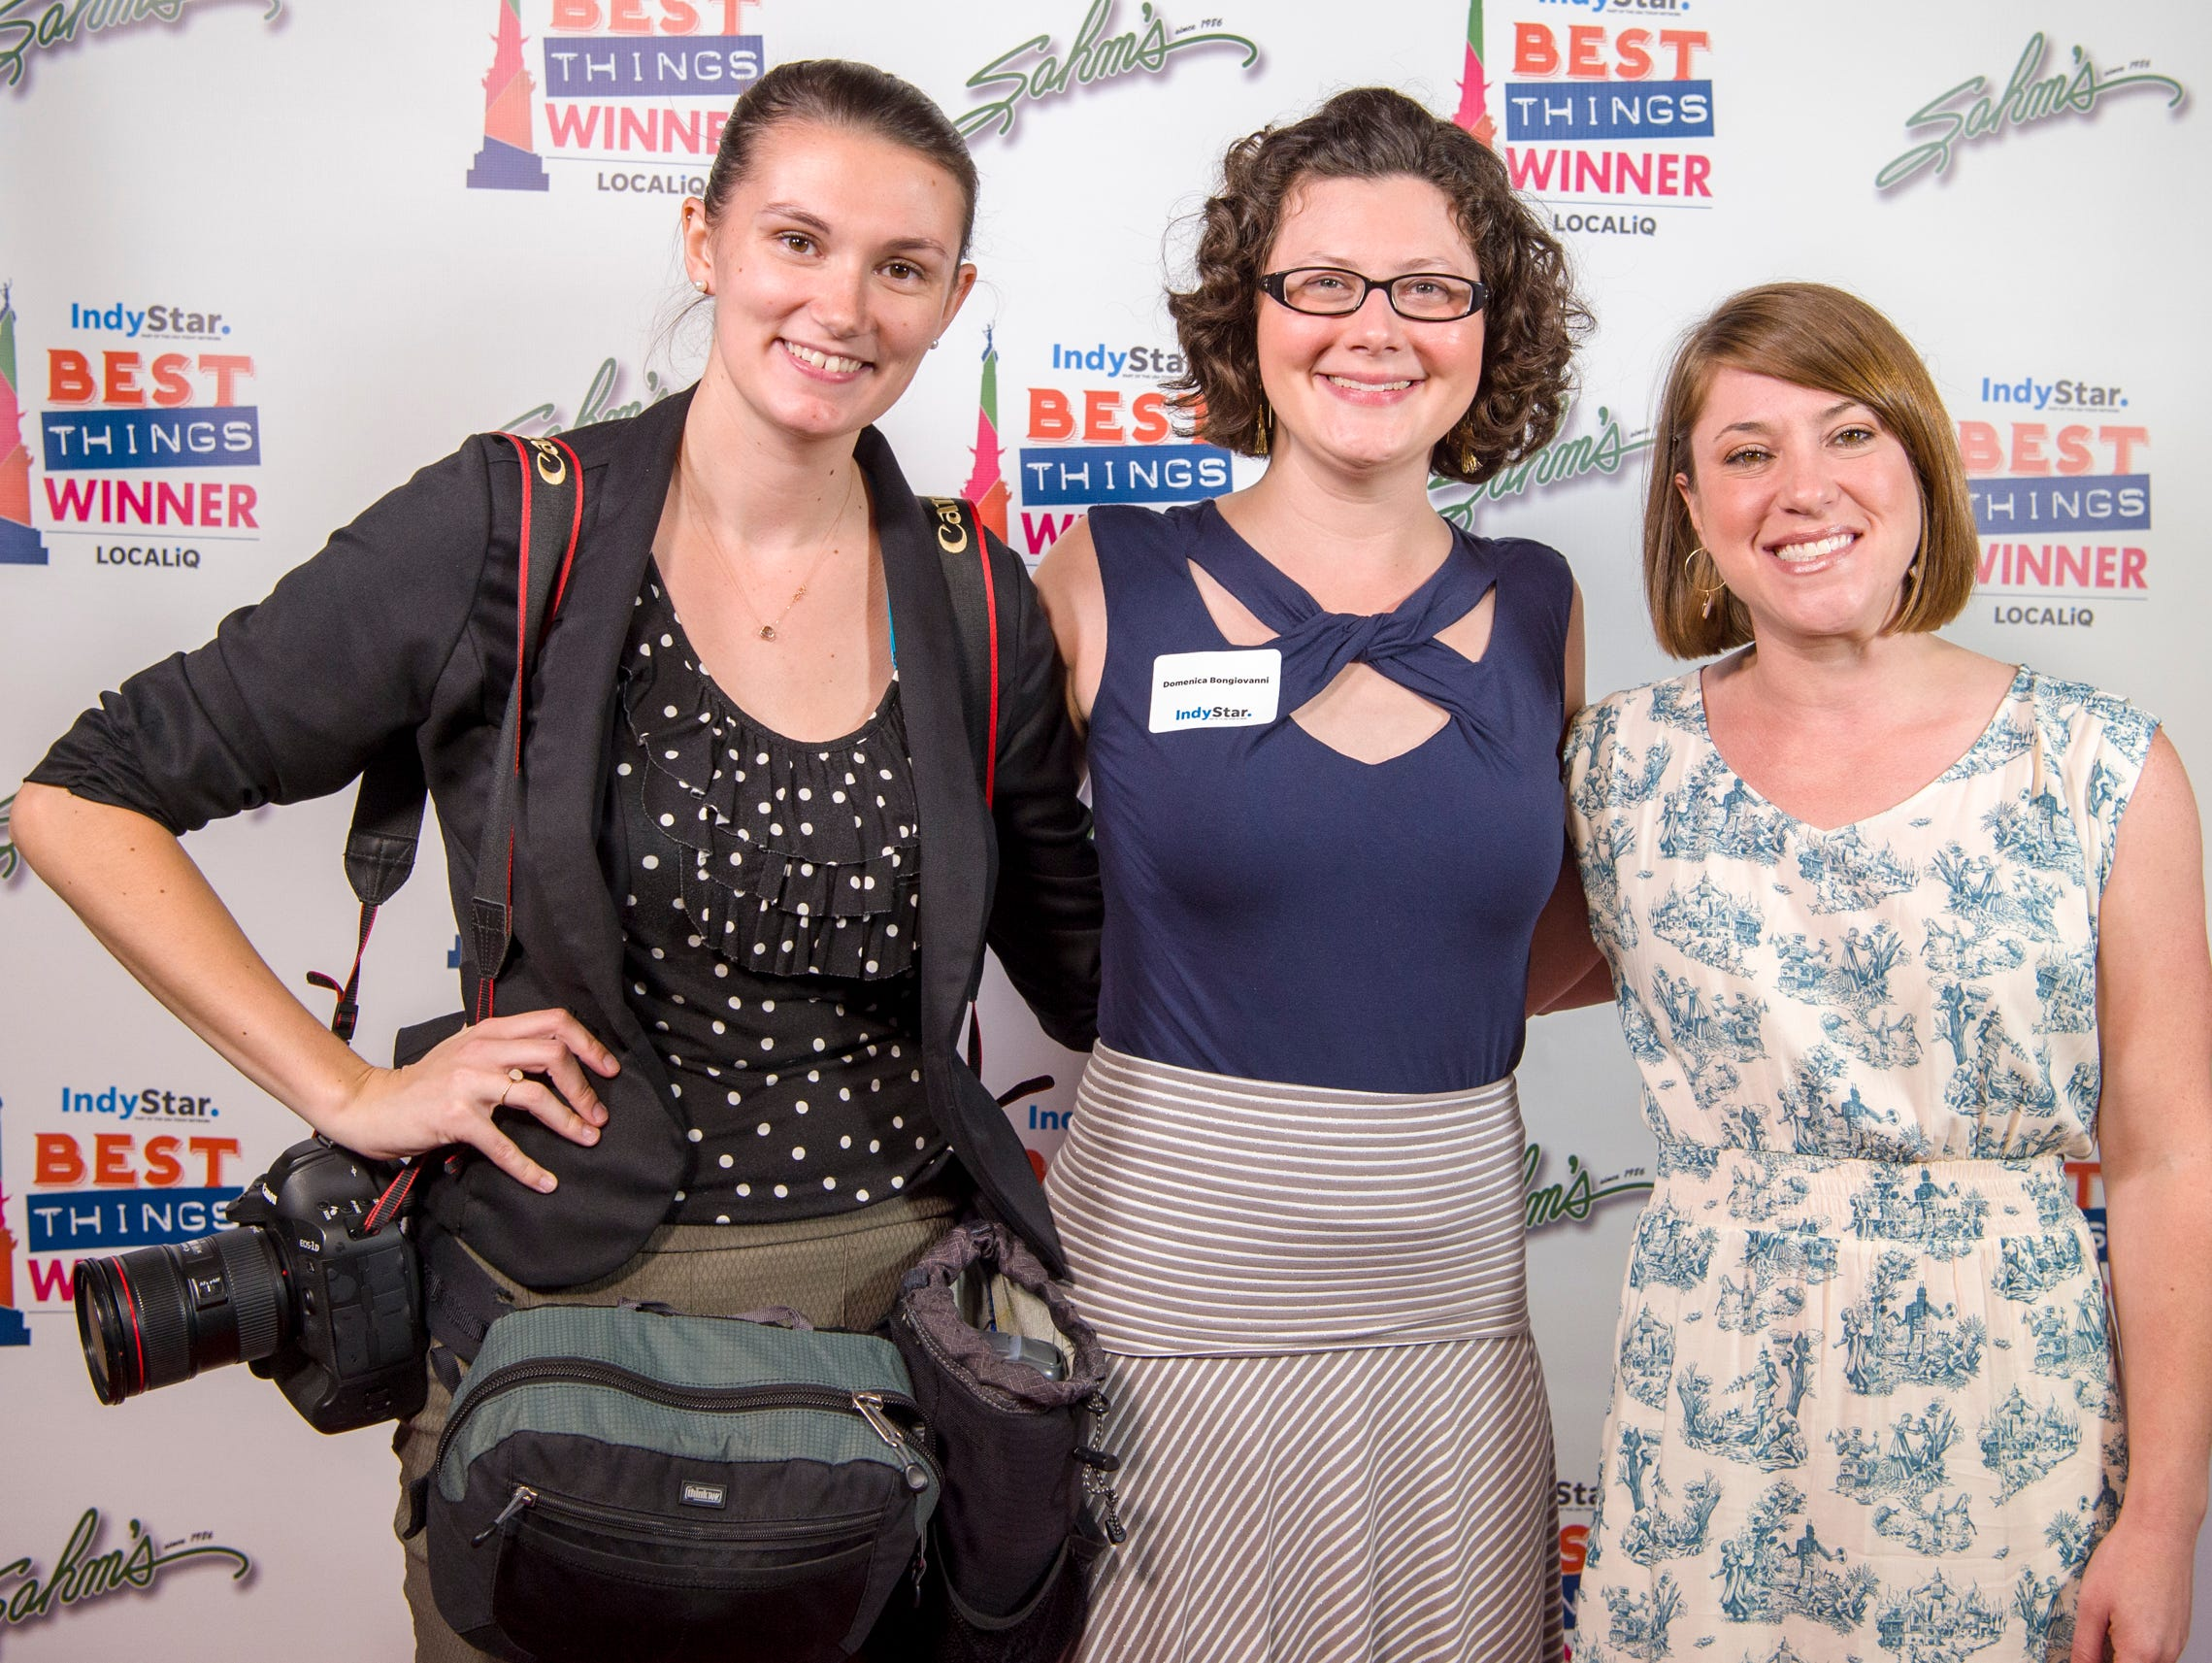 IndyStar's Jenna Watson, Domenica Bongiovanni and Amy Bartner pose for a photo during the award ceremony at One America Tower in Indianapolis, Thursday, Sept. 27, 2018.